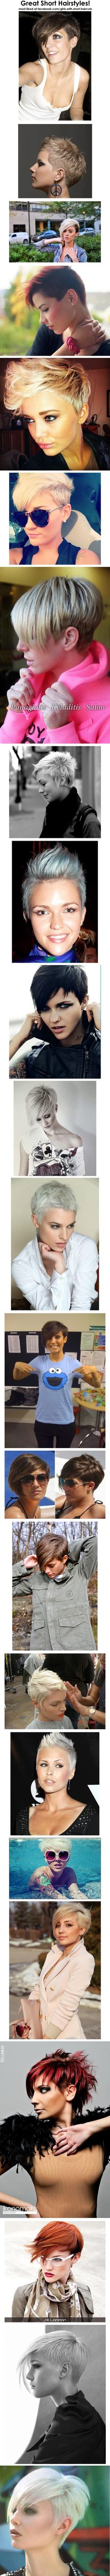 Great Short & Pixie Hairstyles! I really don't think I'll ever grow my hair out again, I just love it short so so much! Shave the sides and growing the top out like I am is about as close as I'll ever get, and when I can style it so many different ways like this shows why would I!?? LOL